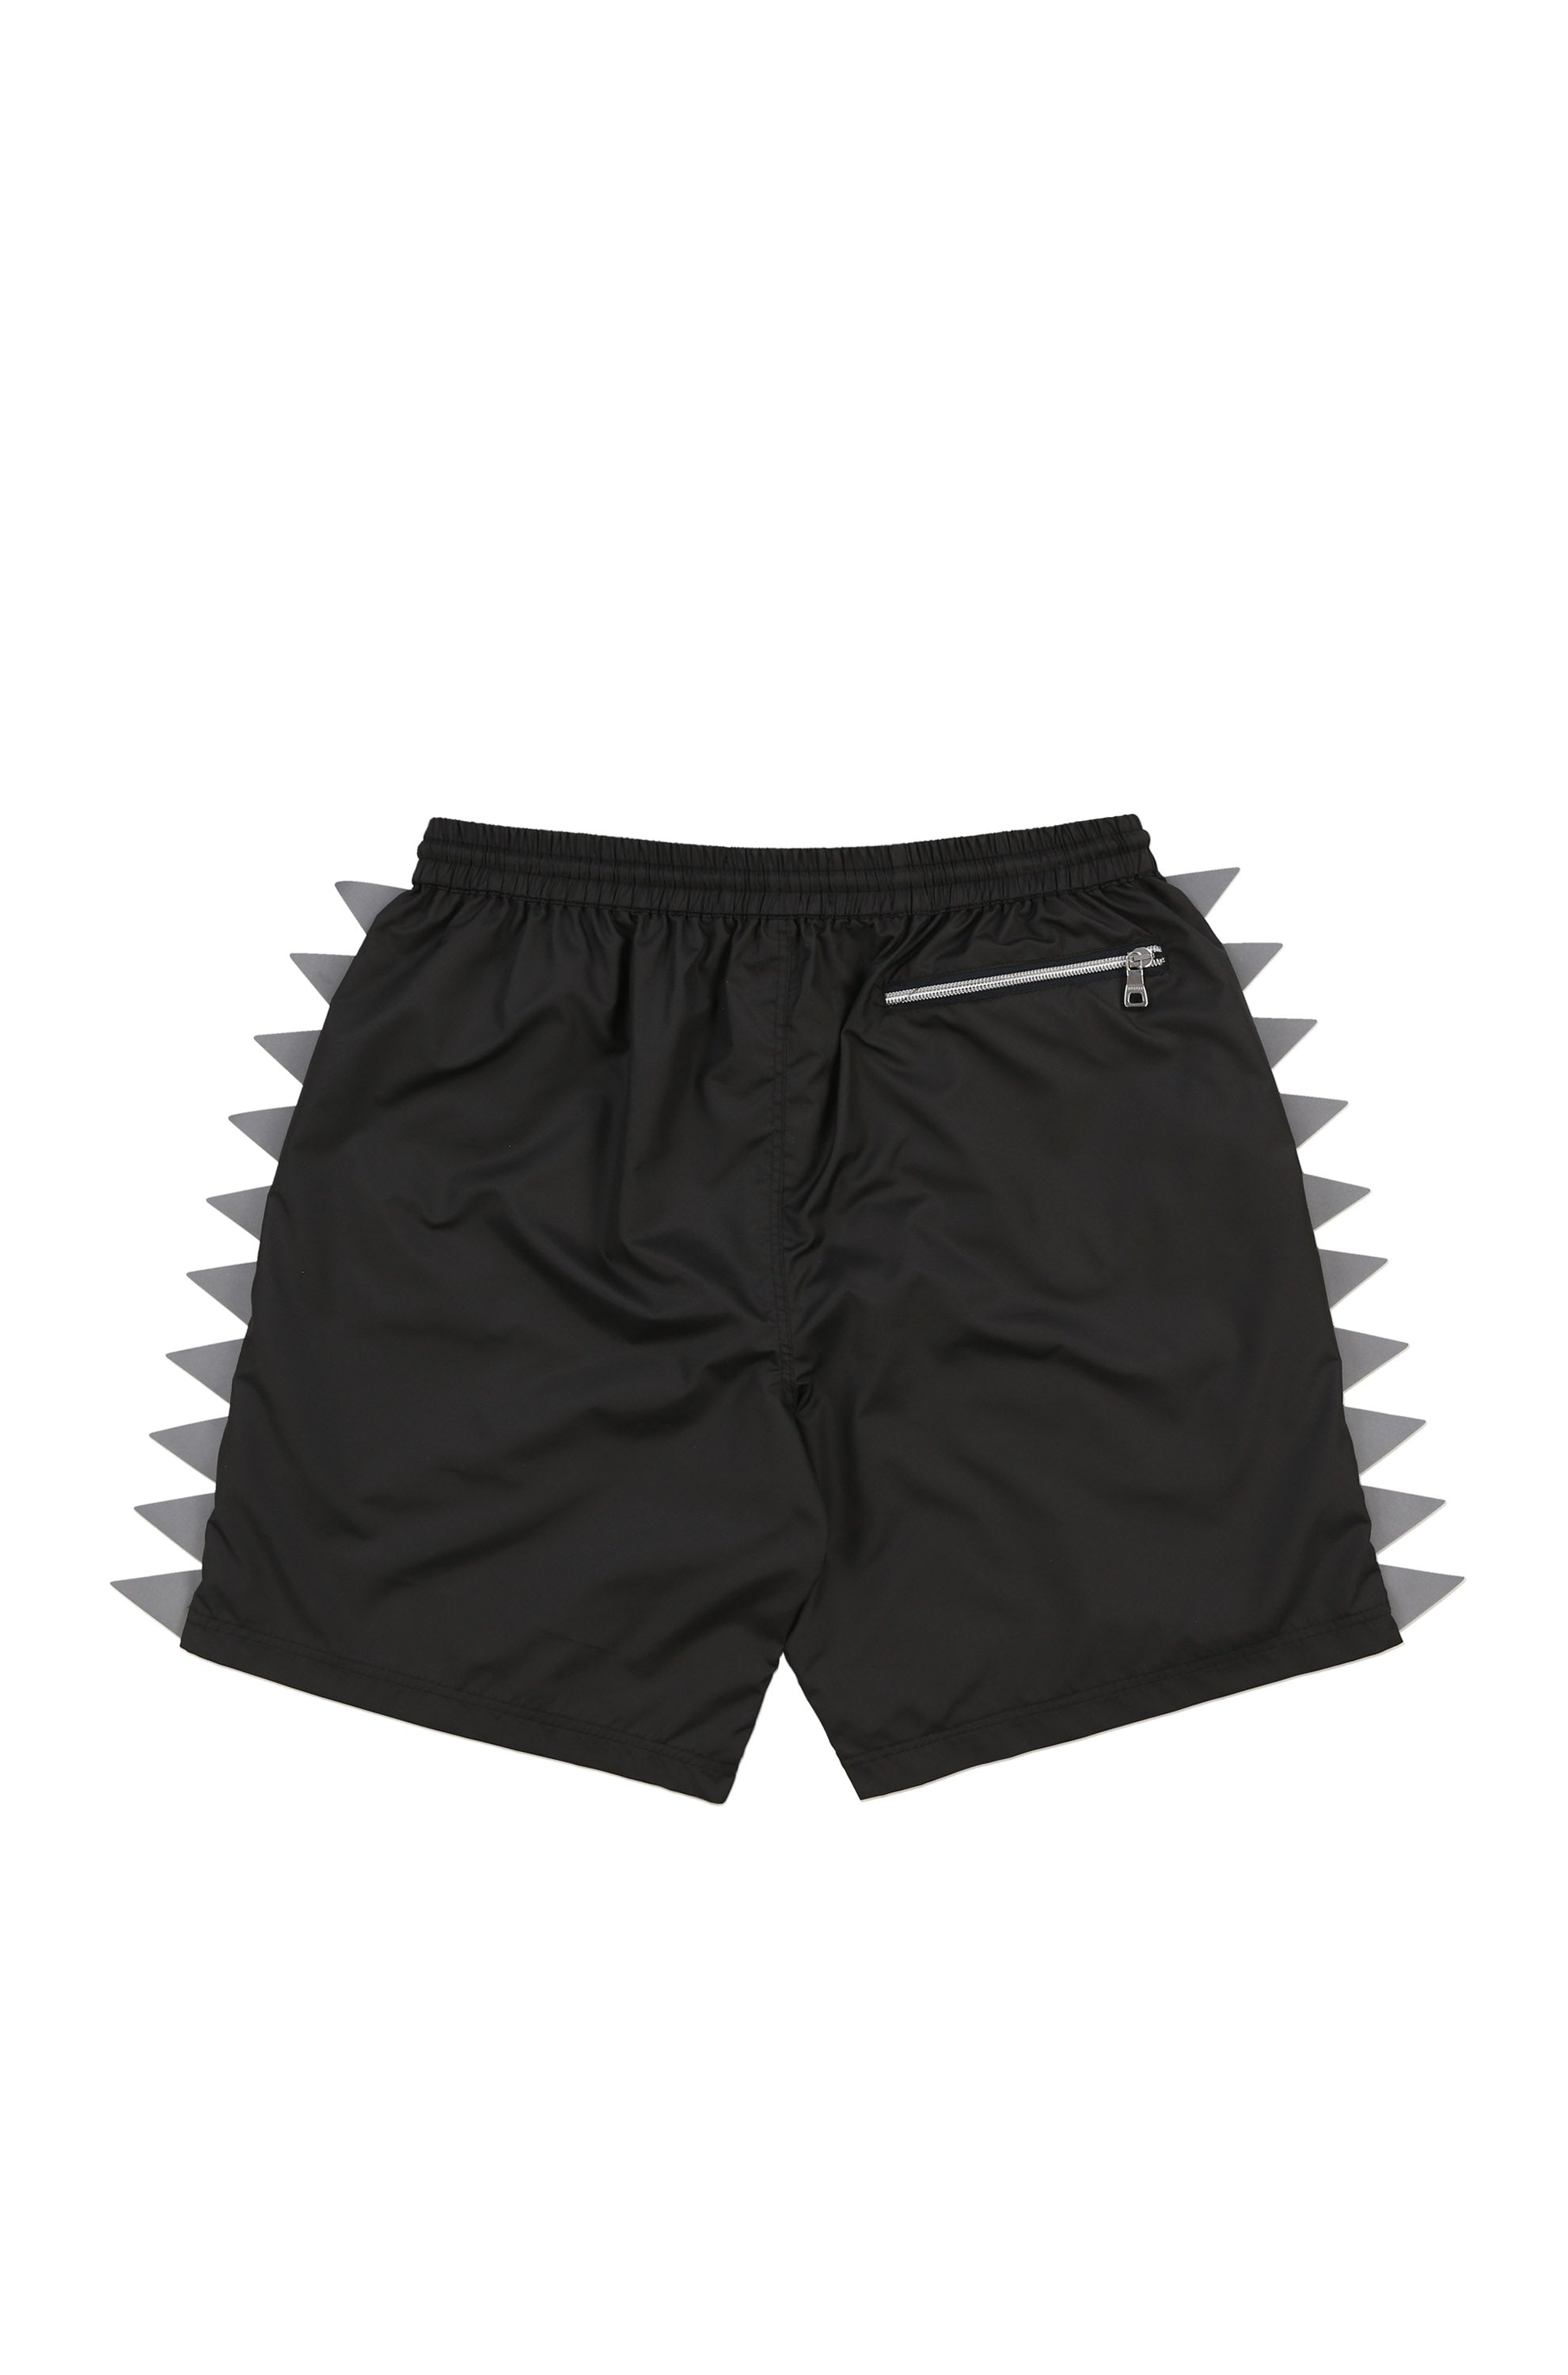 Oyster Pennant Flag Short (Black)